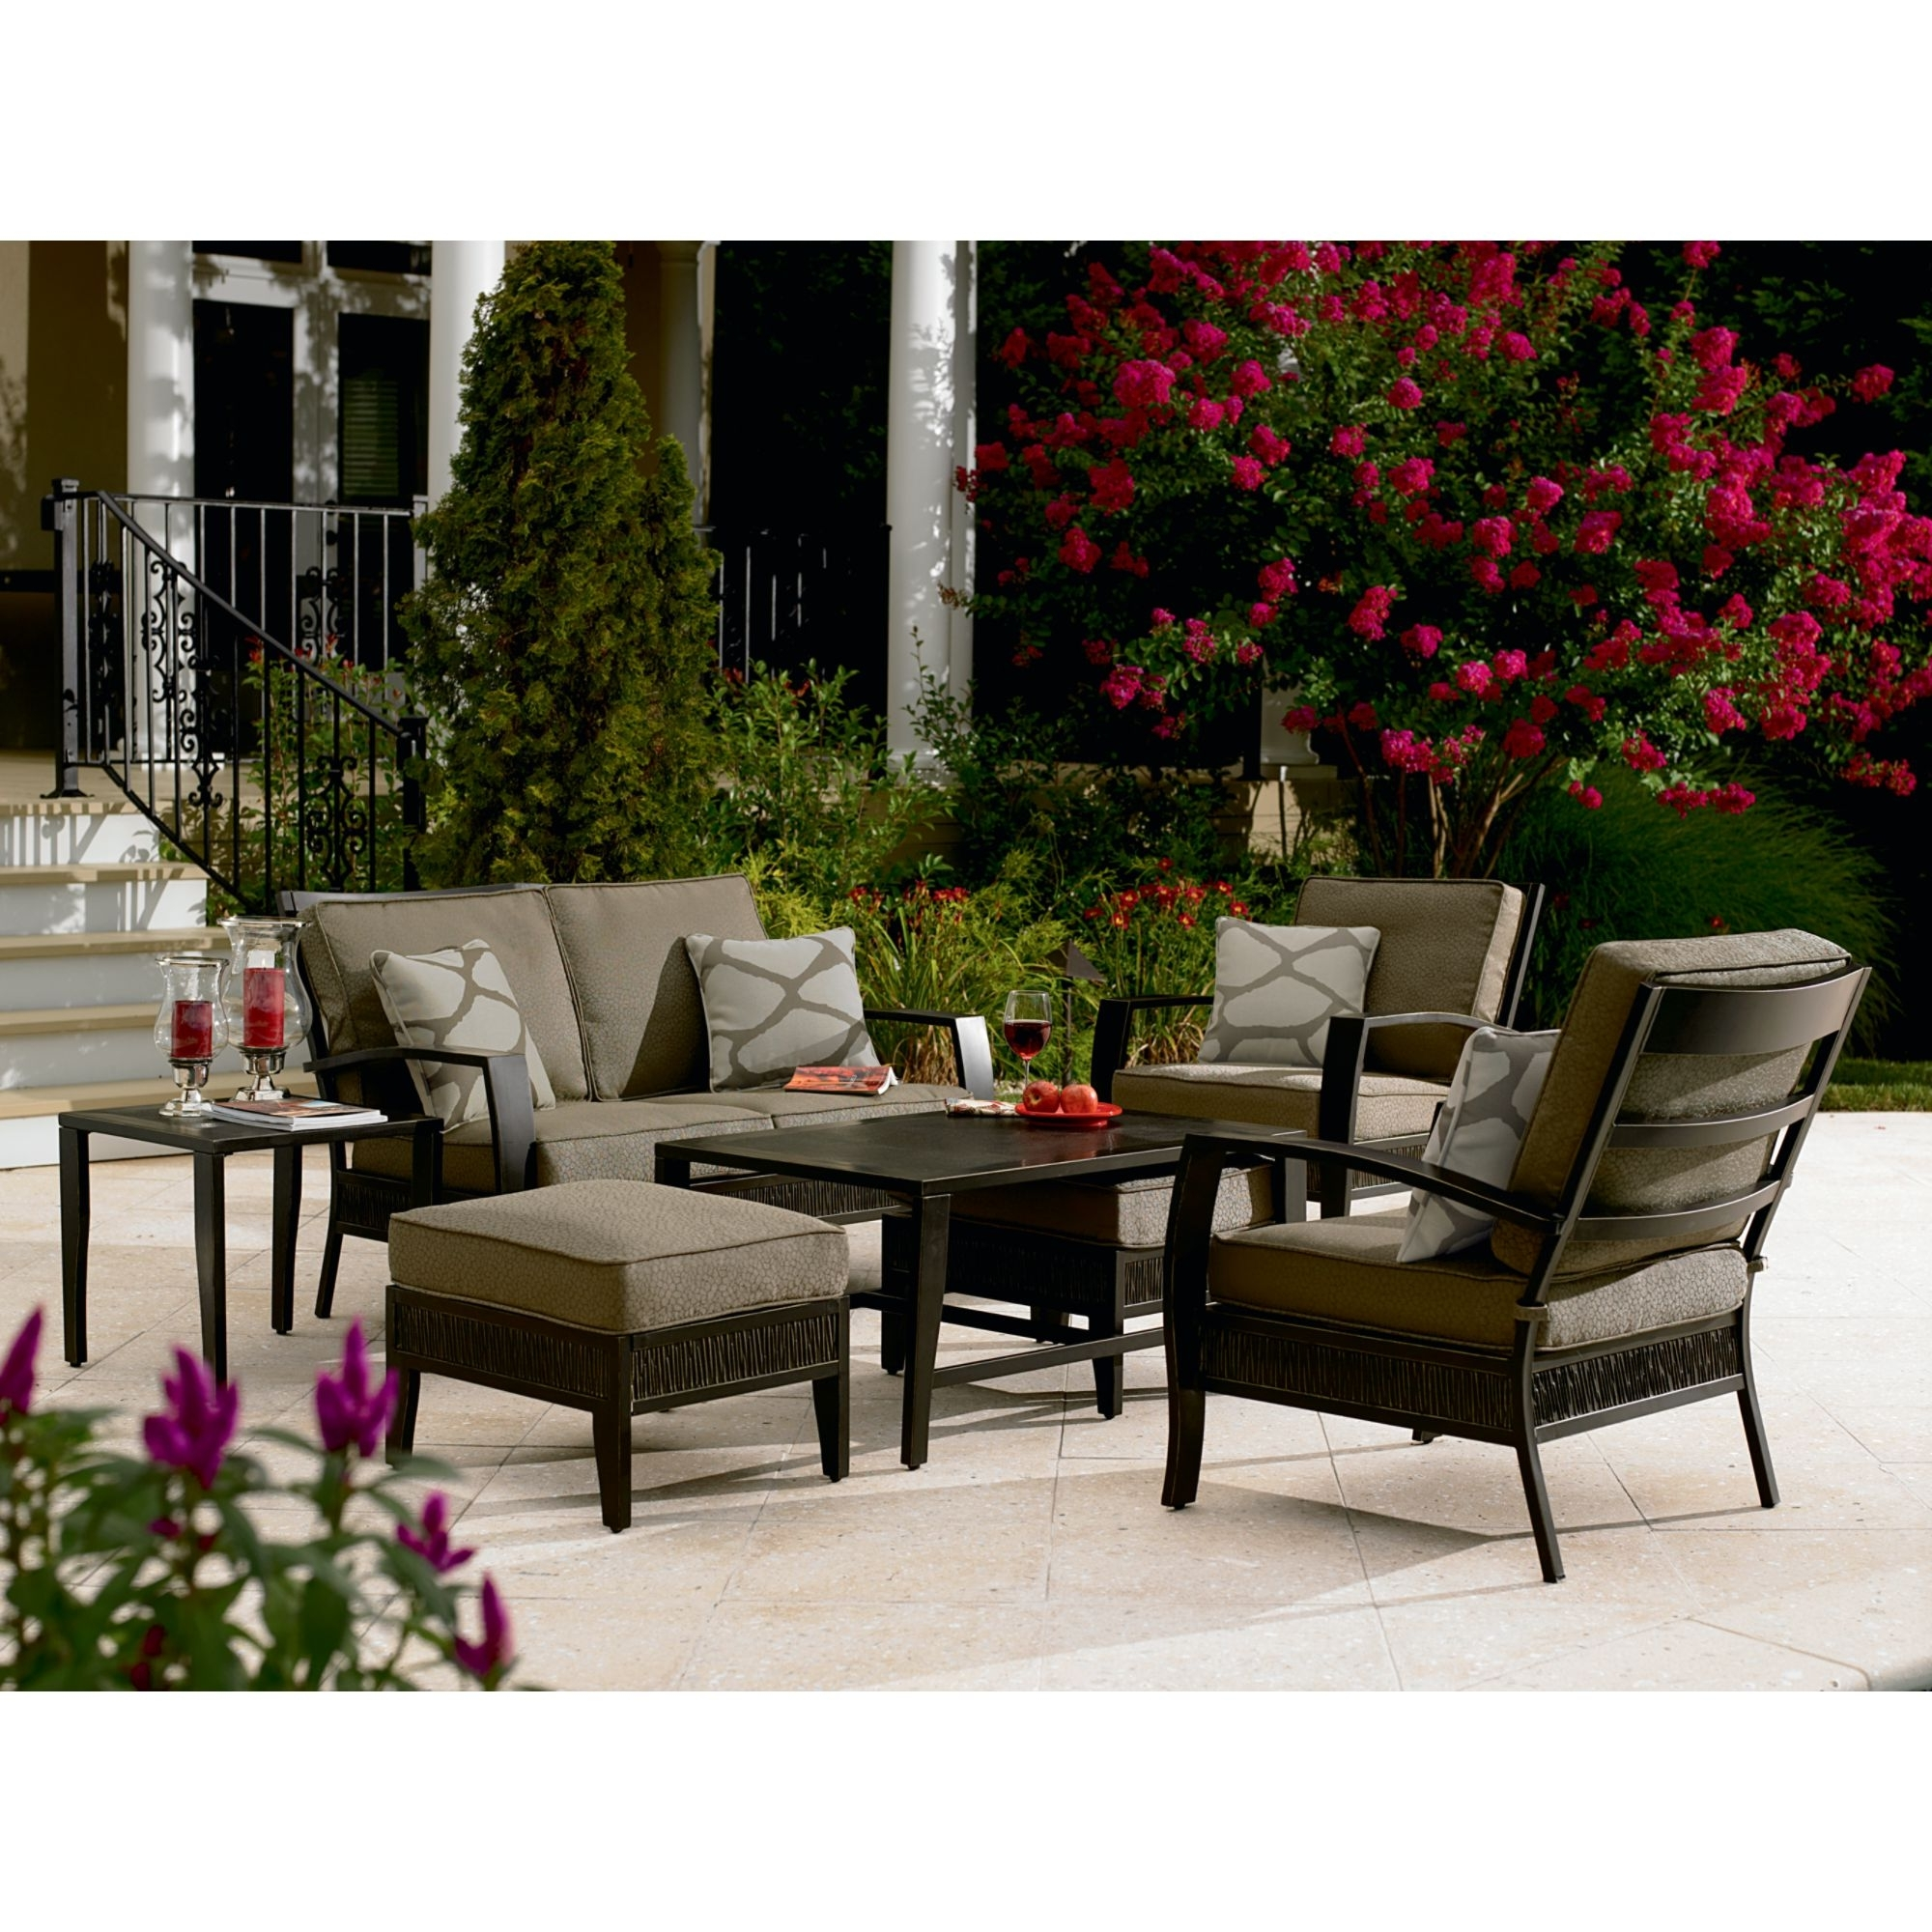 Patio Conversation Sets At Sears Intended For Well Known Patio Screen Cover Tags : Patio Conversation Sets With Fire Pit (View 9 of 15)